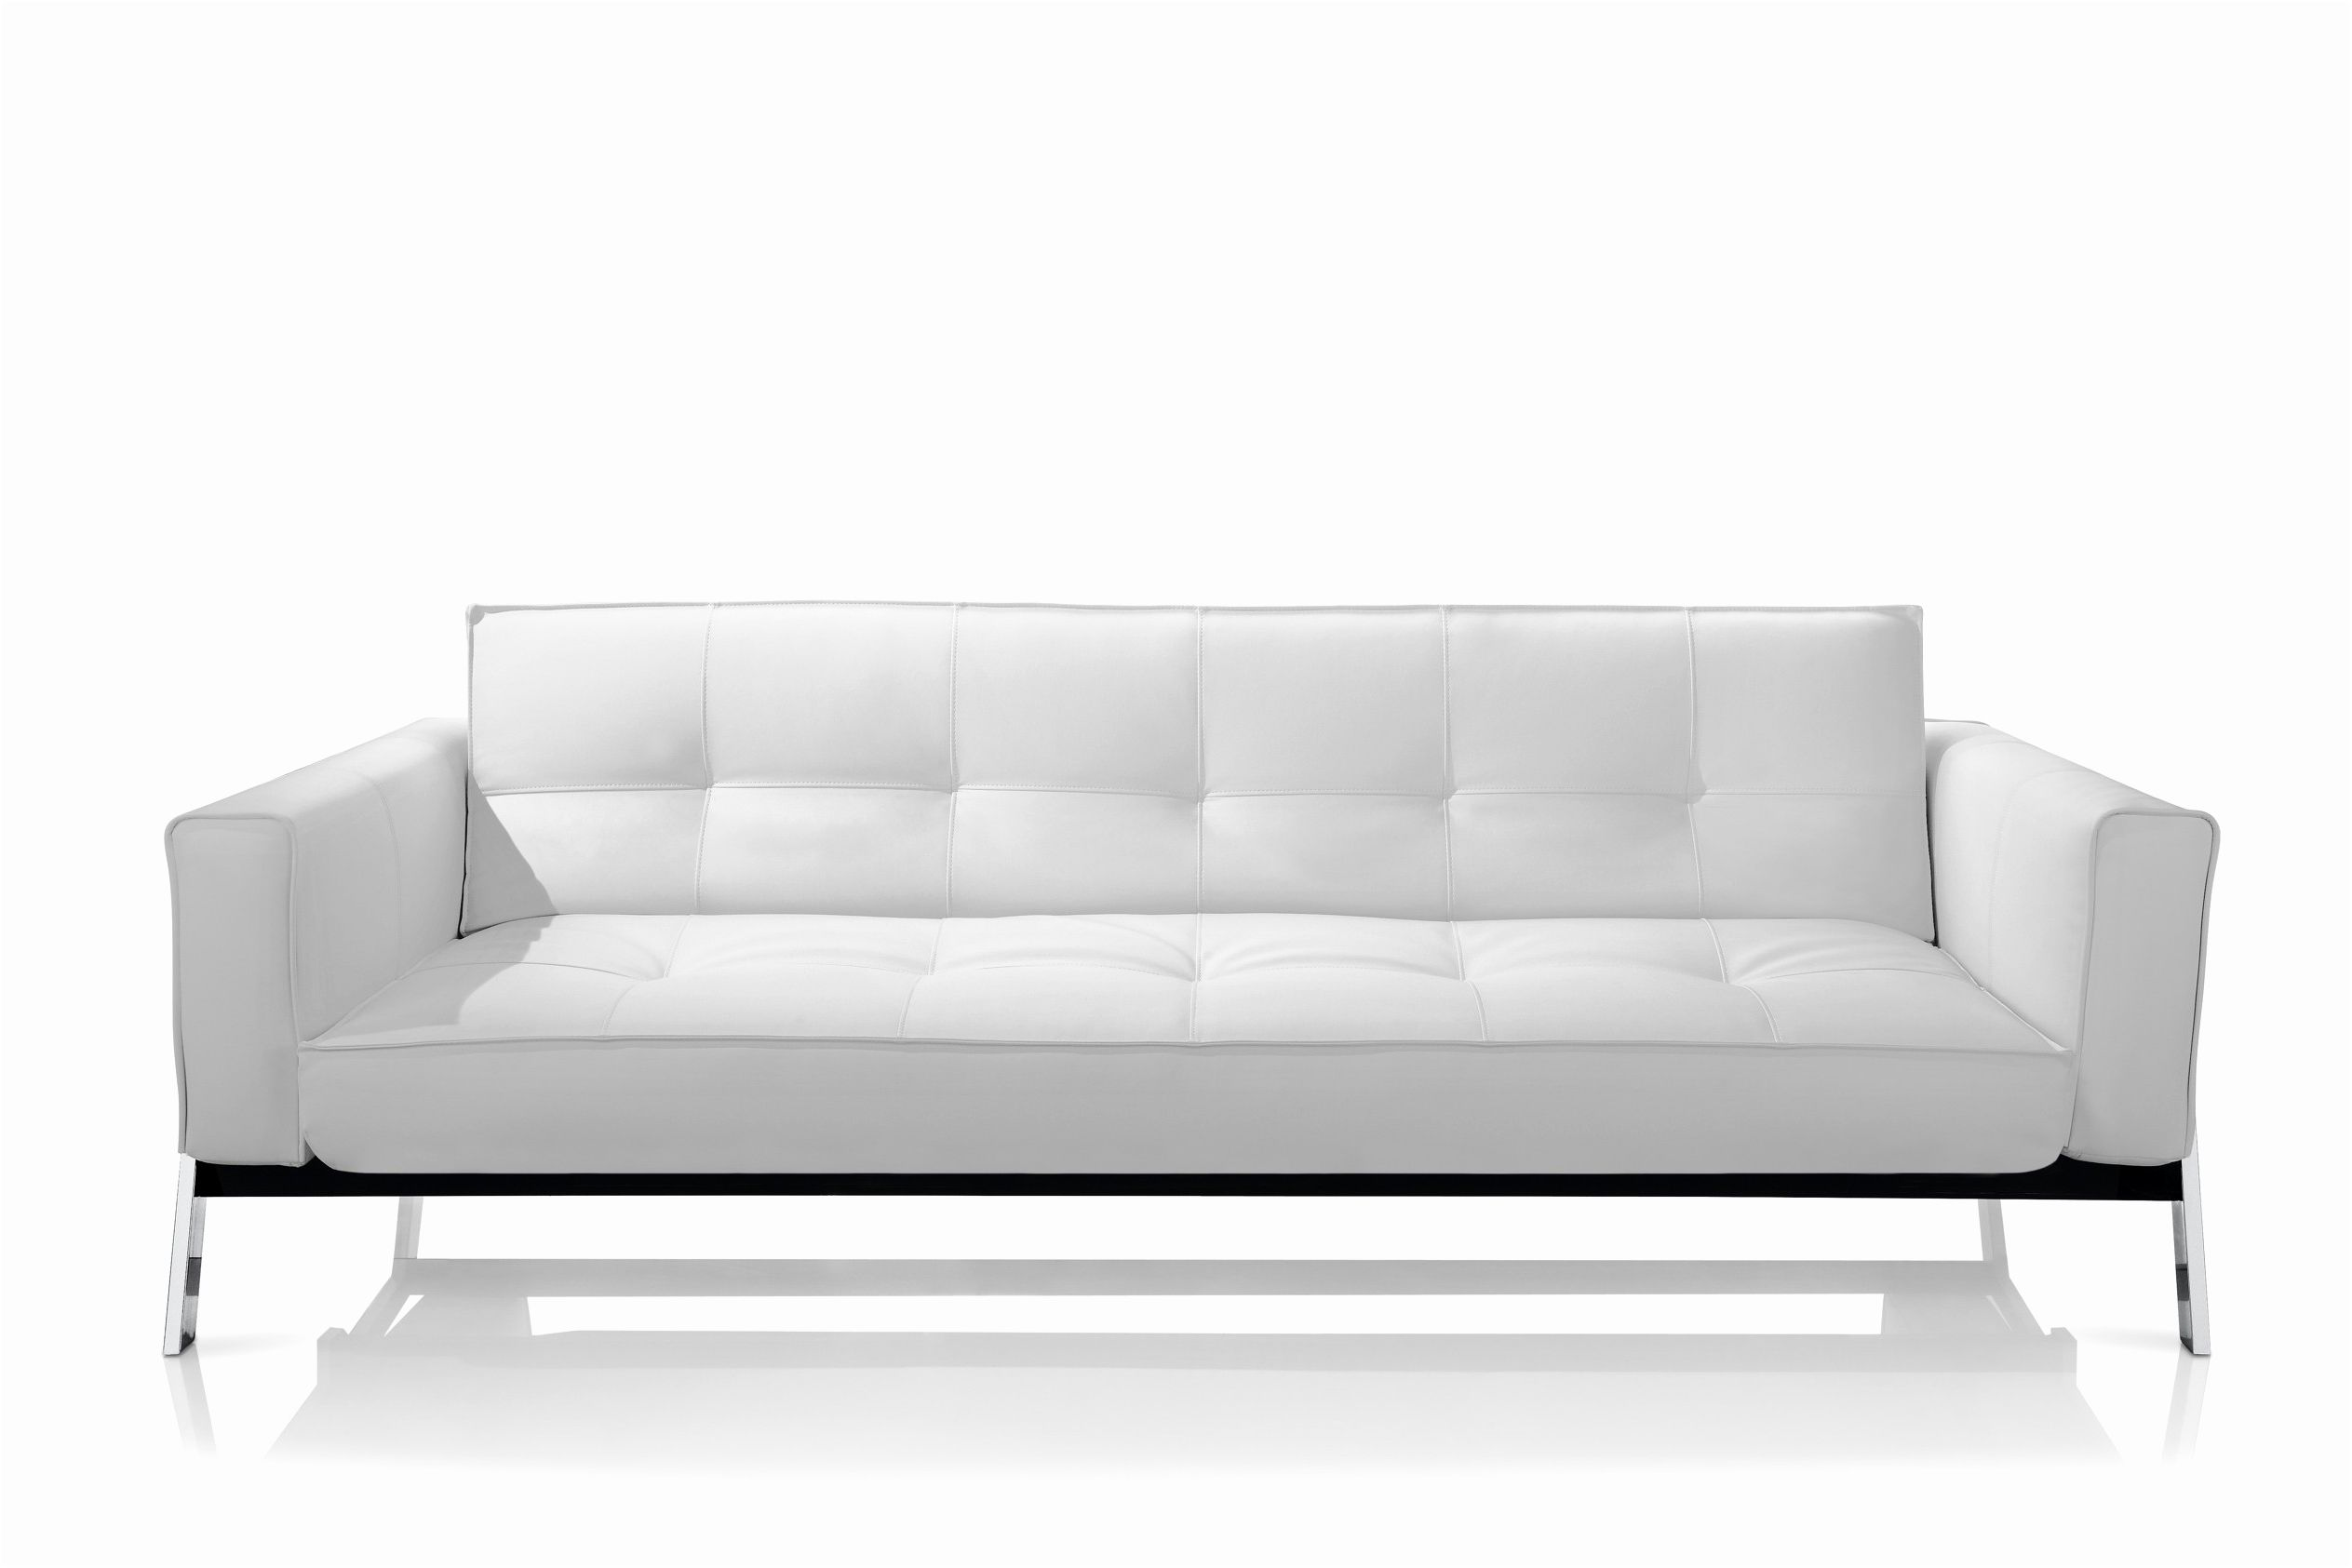 incredible sectional sleeper sofa queen photograph-Sensational Sectional Sleeper sofa Queen Online